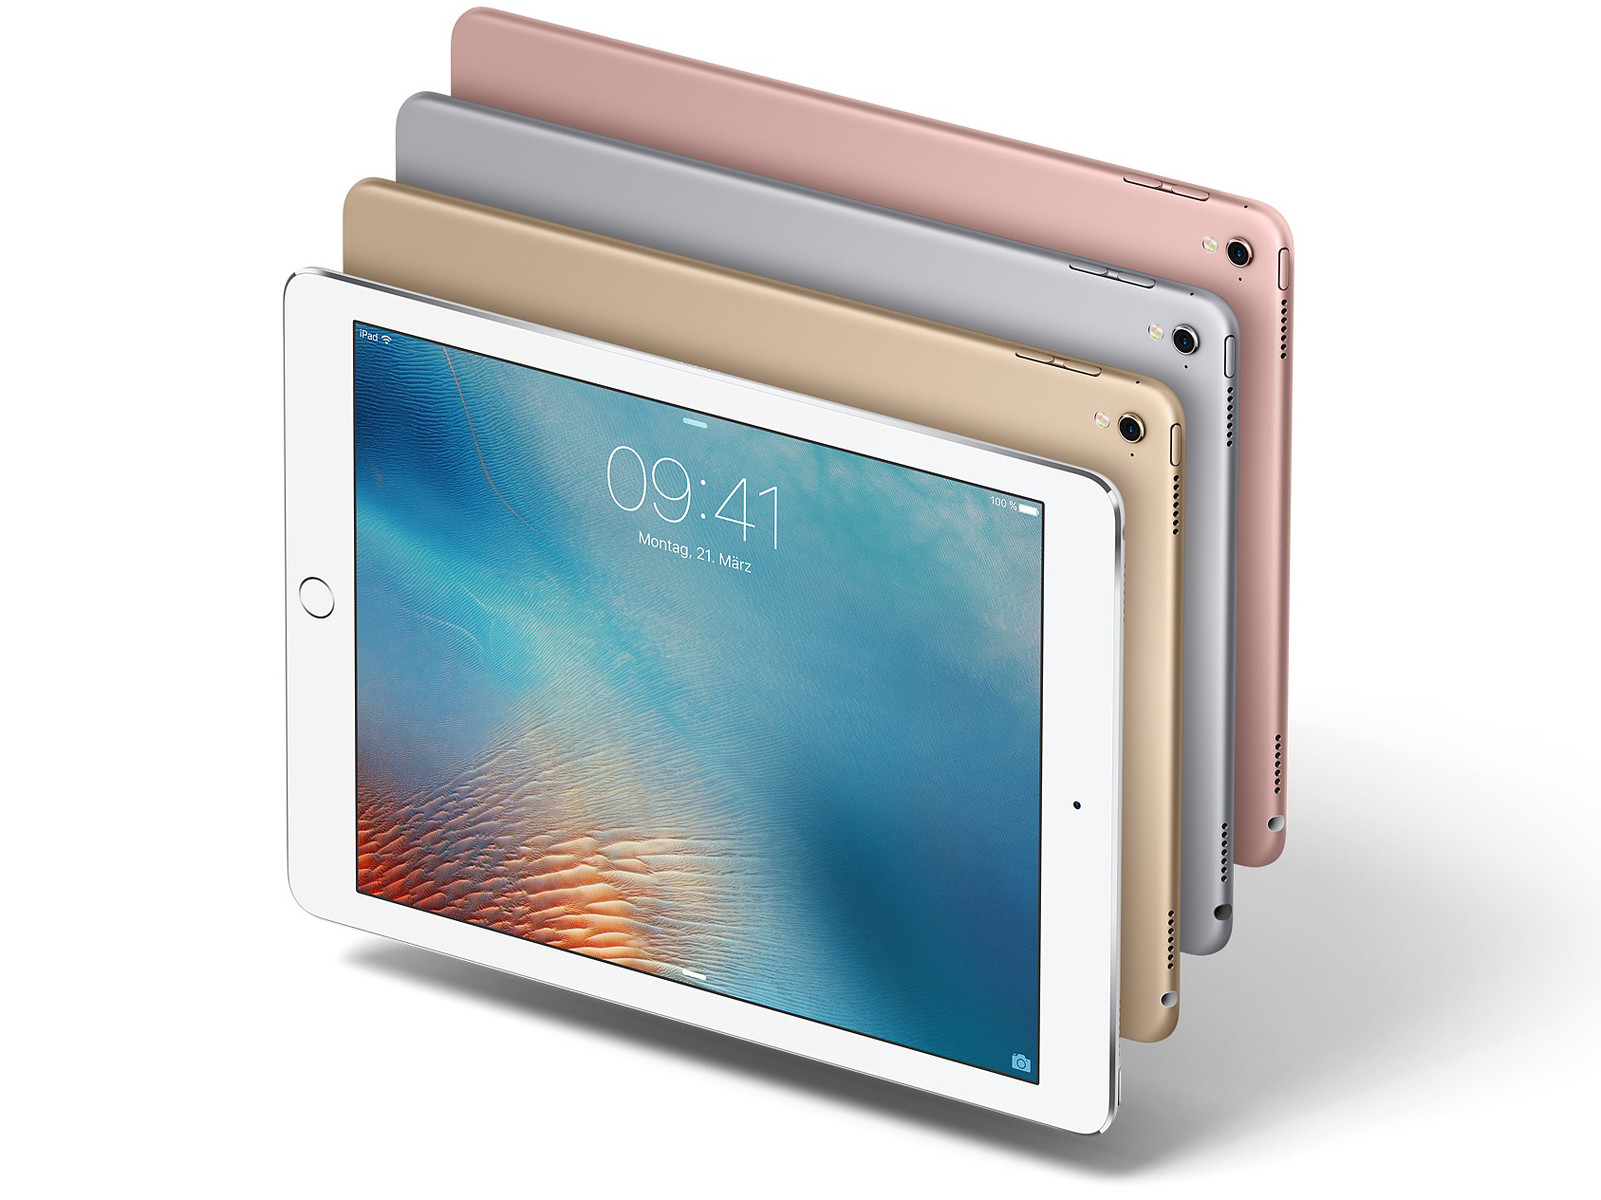 Apple is officially selling refurbished iPad Pro models on its store with attractive prices